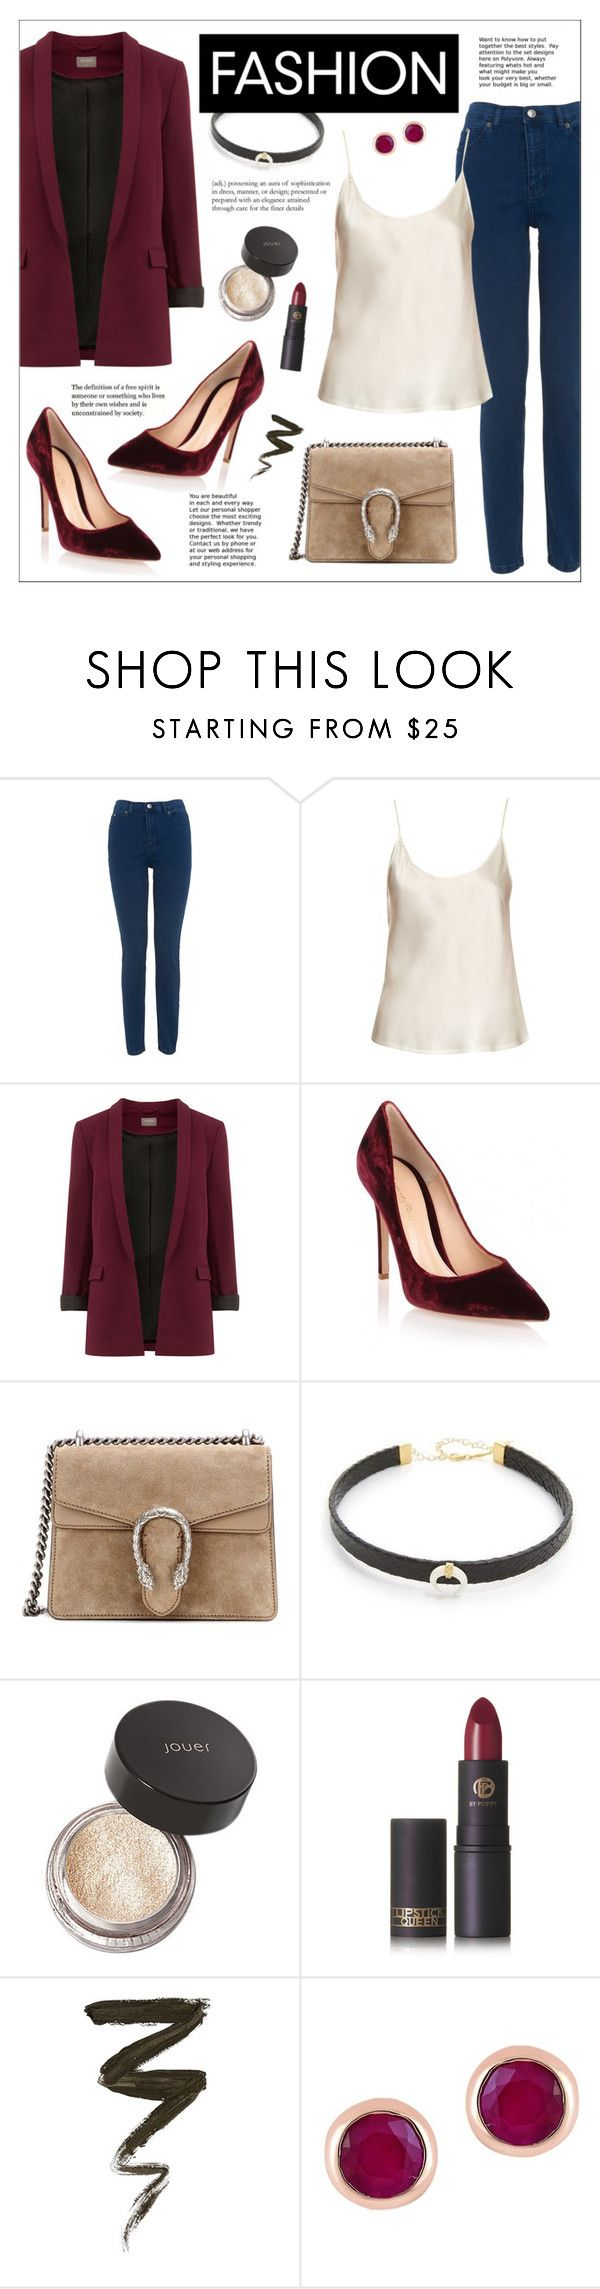 """Fall Trends: Velvet Shoes and Choker"" by ms-mandarinka ❤ liked on Polyvore featuring Whistles, La Perla, Gianvito Rossi, Gucci, Jacquie Aiche, Jouer, Lipstick Queen and Effy Jewelry"